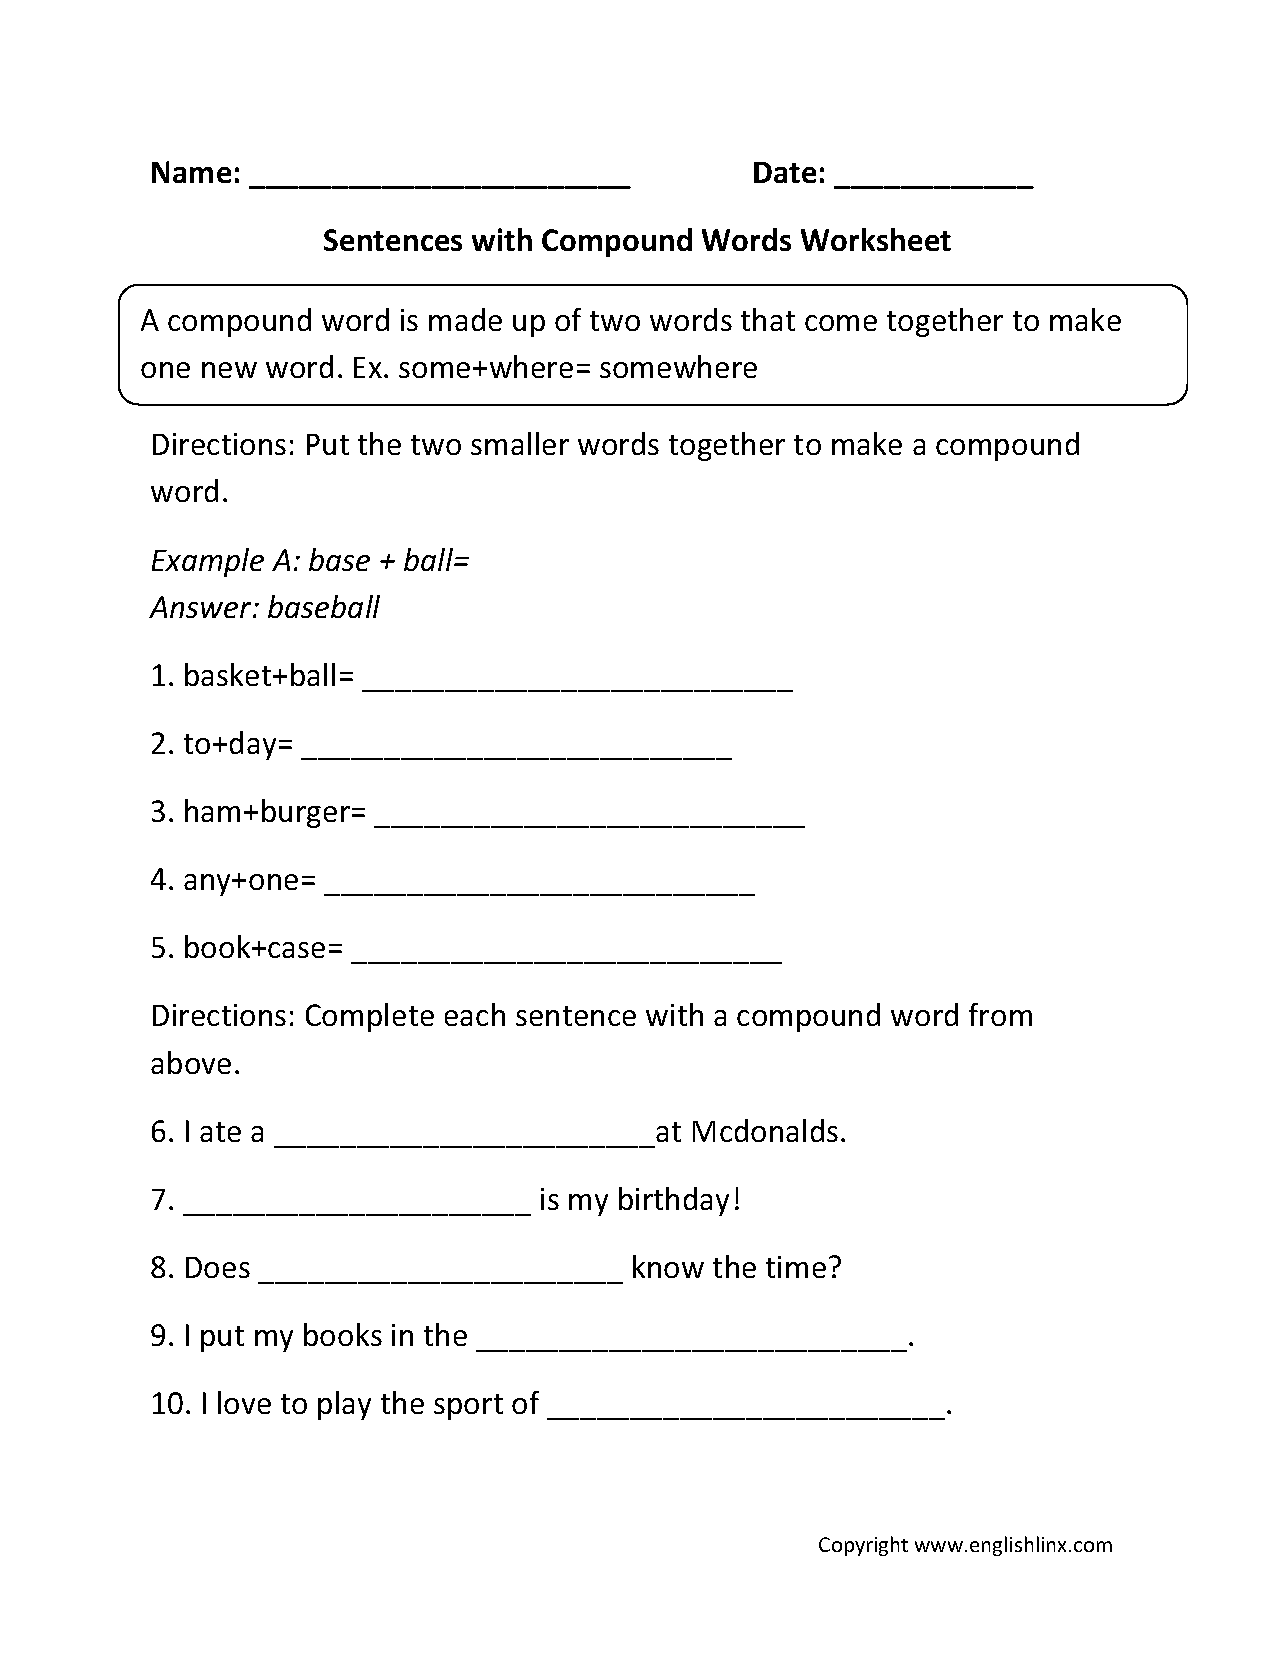 Worksheets Example Of Rhyming Words In Sentence englishlinx com compound words worksheets sentences with worksheets